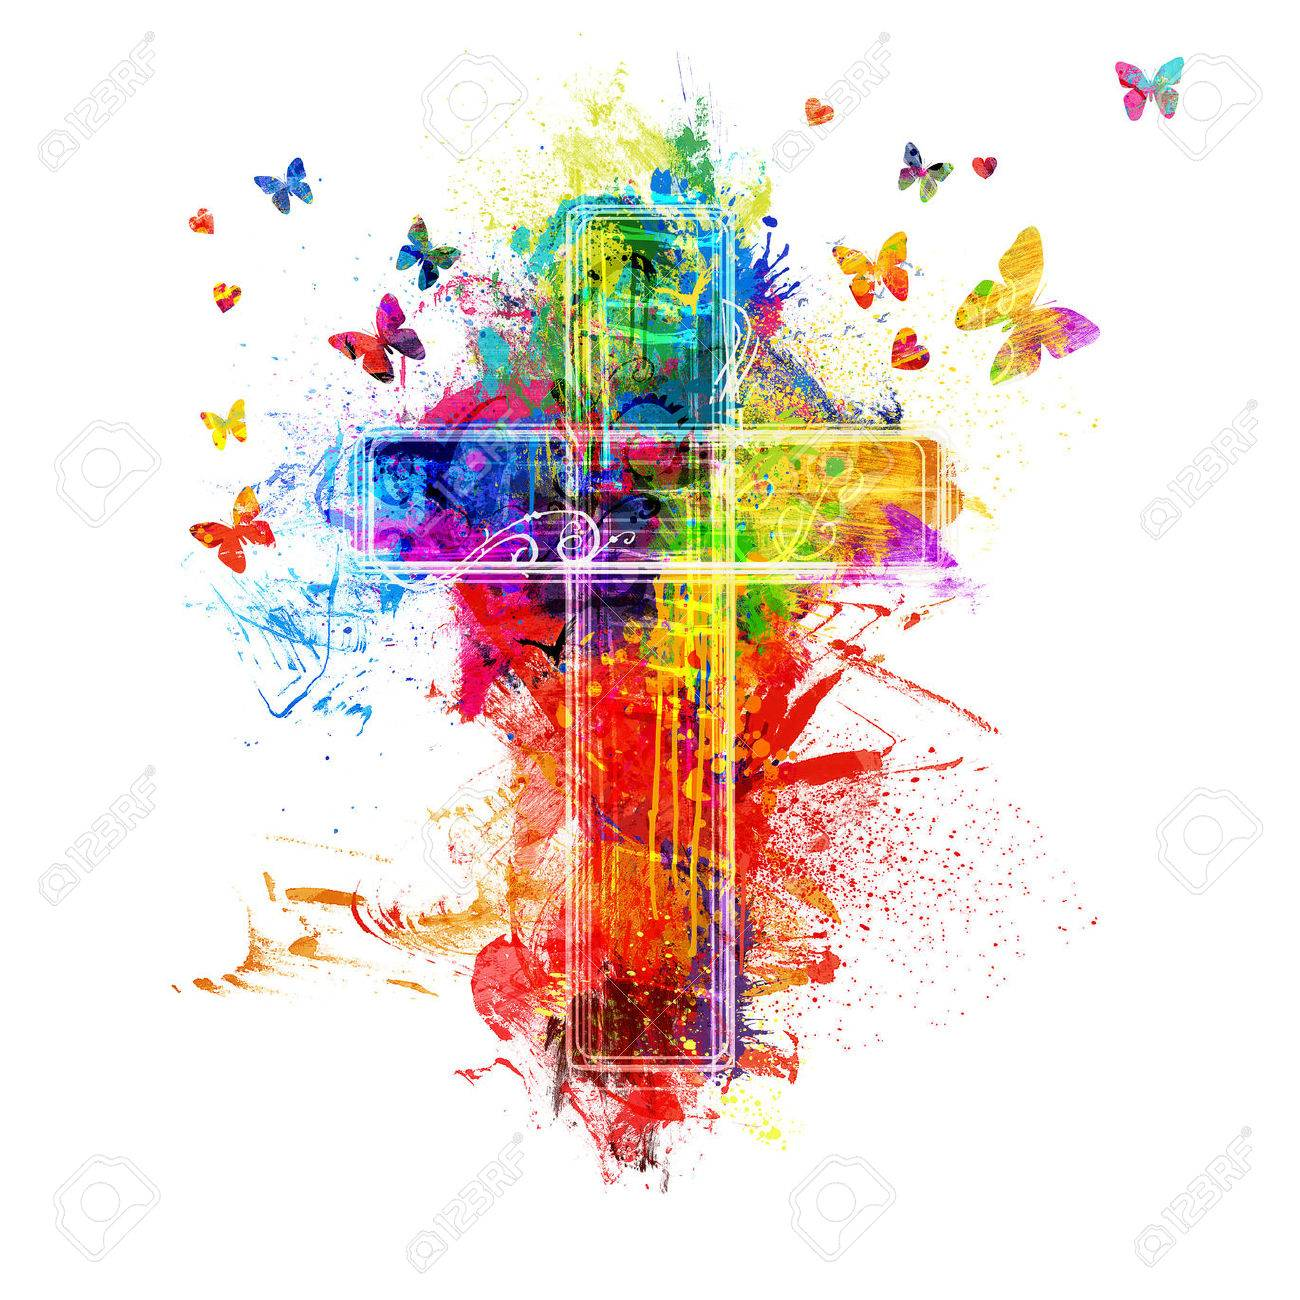 A cross created by colorful paint splatters - 51416322